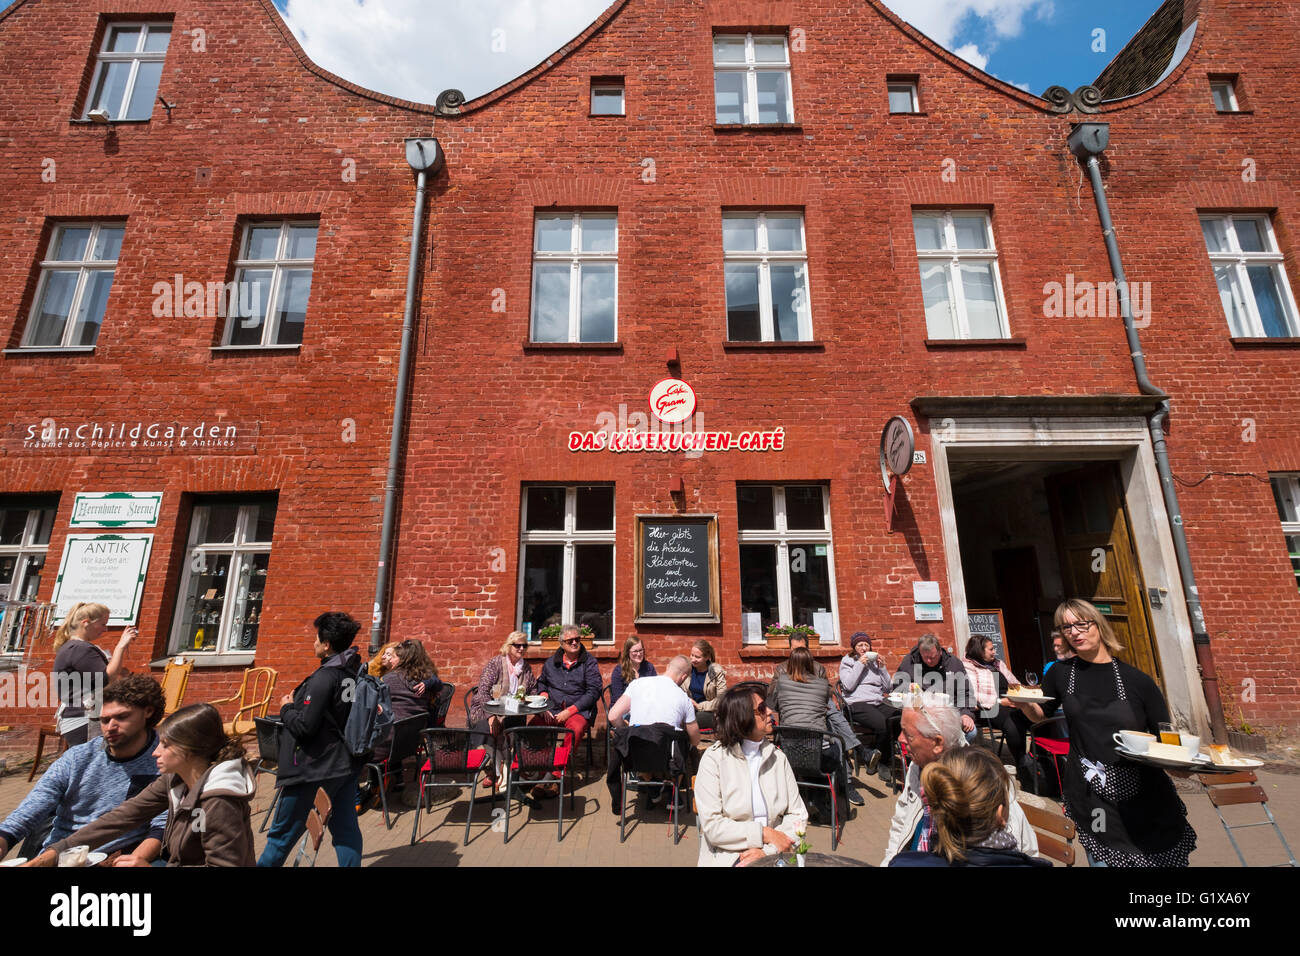 Cafe in front of traditional Dutch style house in Dutch Quarter in Potsdam Brandenburg Germany - Stock Image